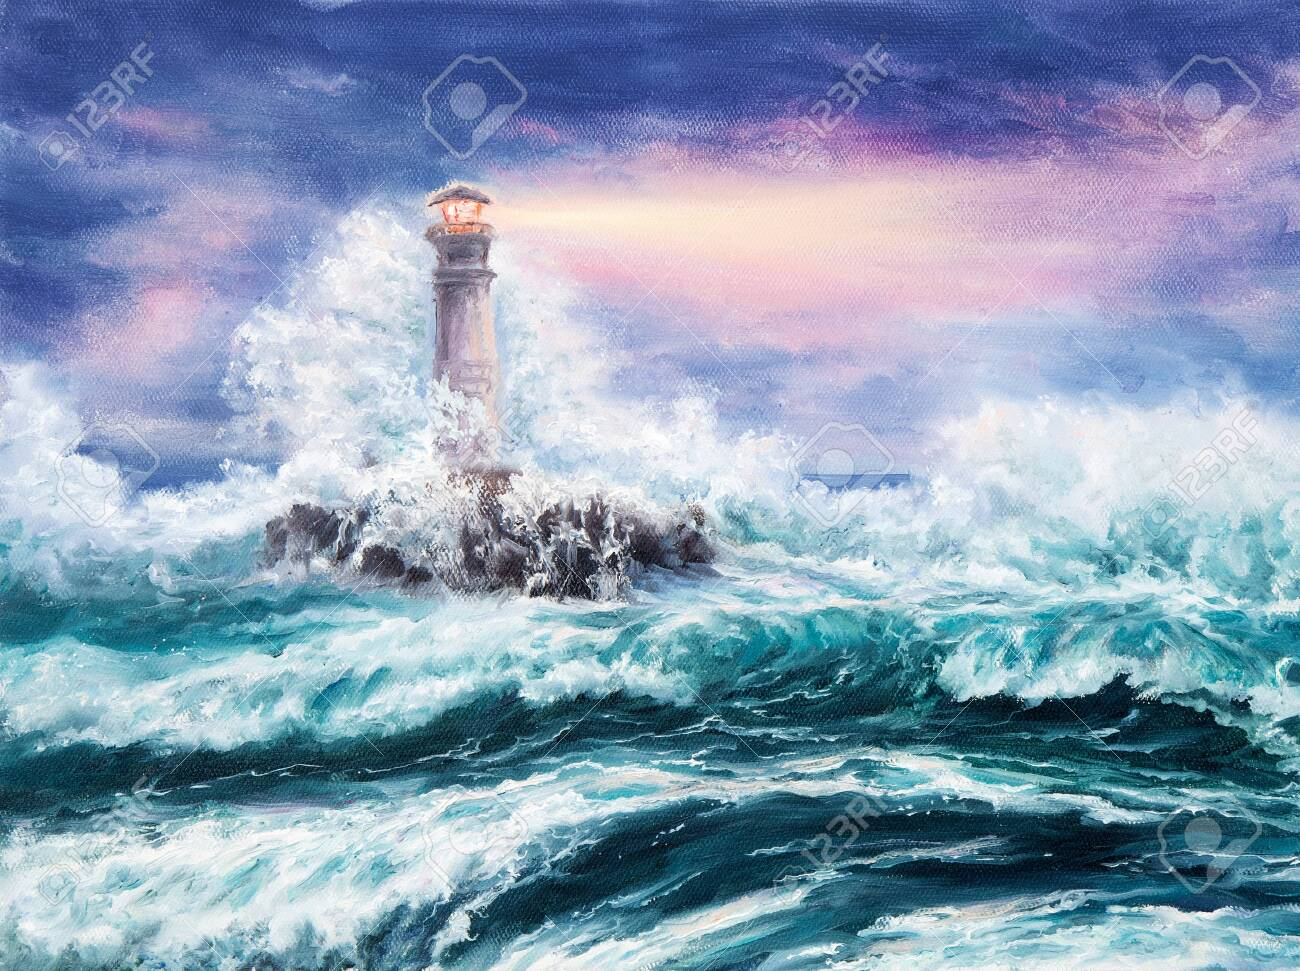 Original Oil Painting Of Lighthouse During Storm On Canvas Purple Stock Photo Picture And Royalty Free Image Image 140100904